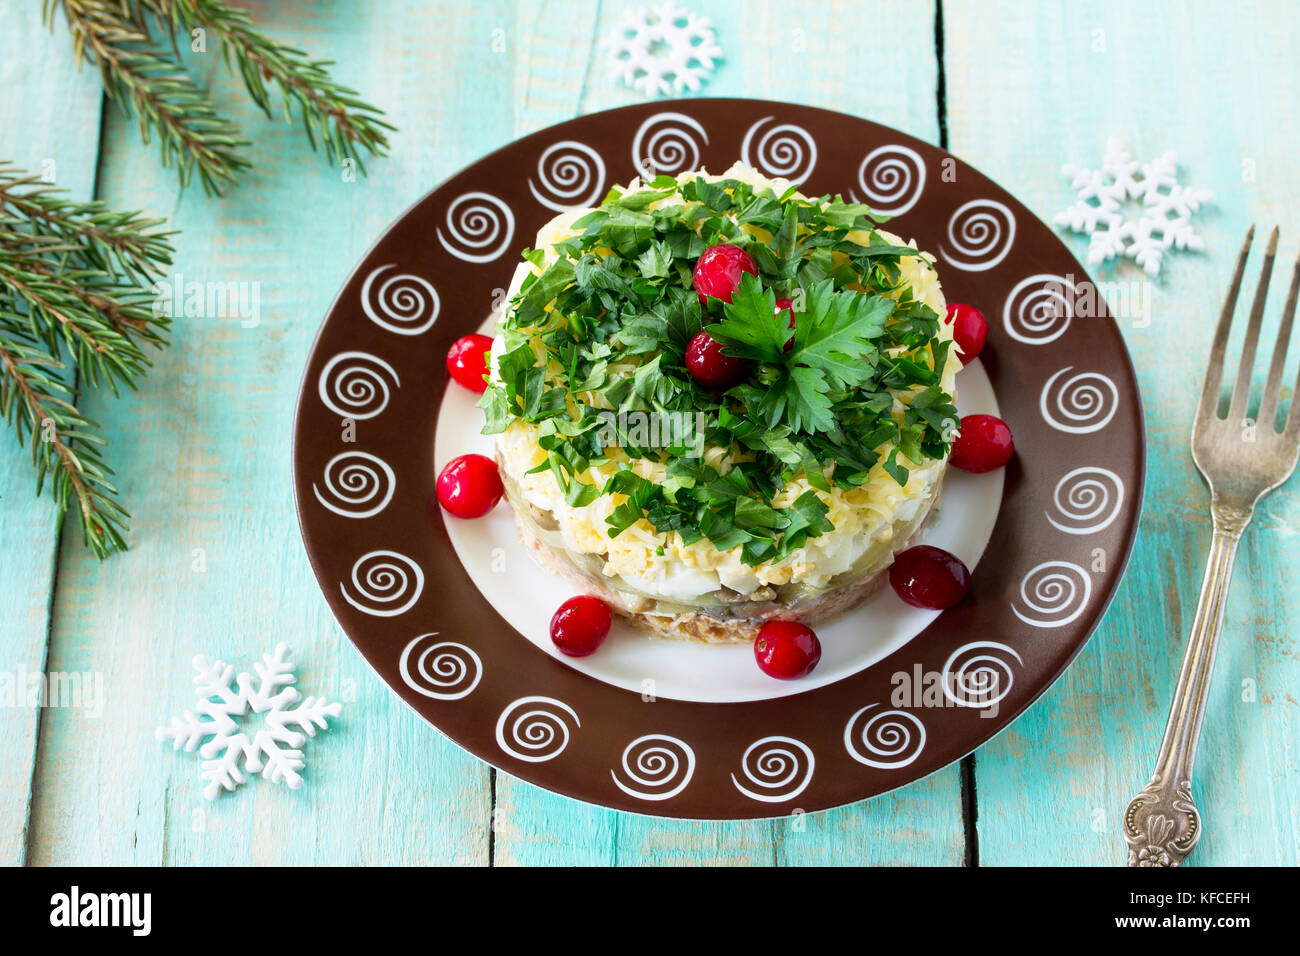 Homemade snacks on a festive Christmas table. Fish salad with mushrooms, salmon, cranberries and cheese. - Stock Image